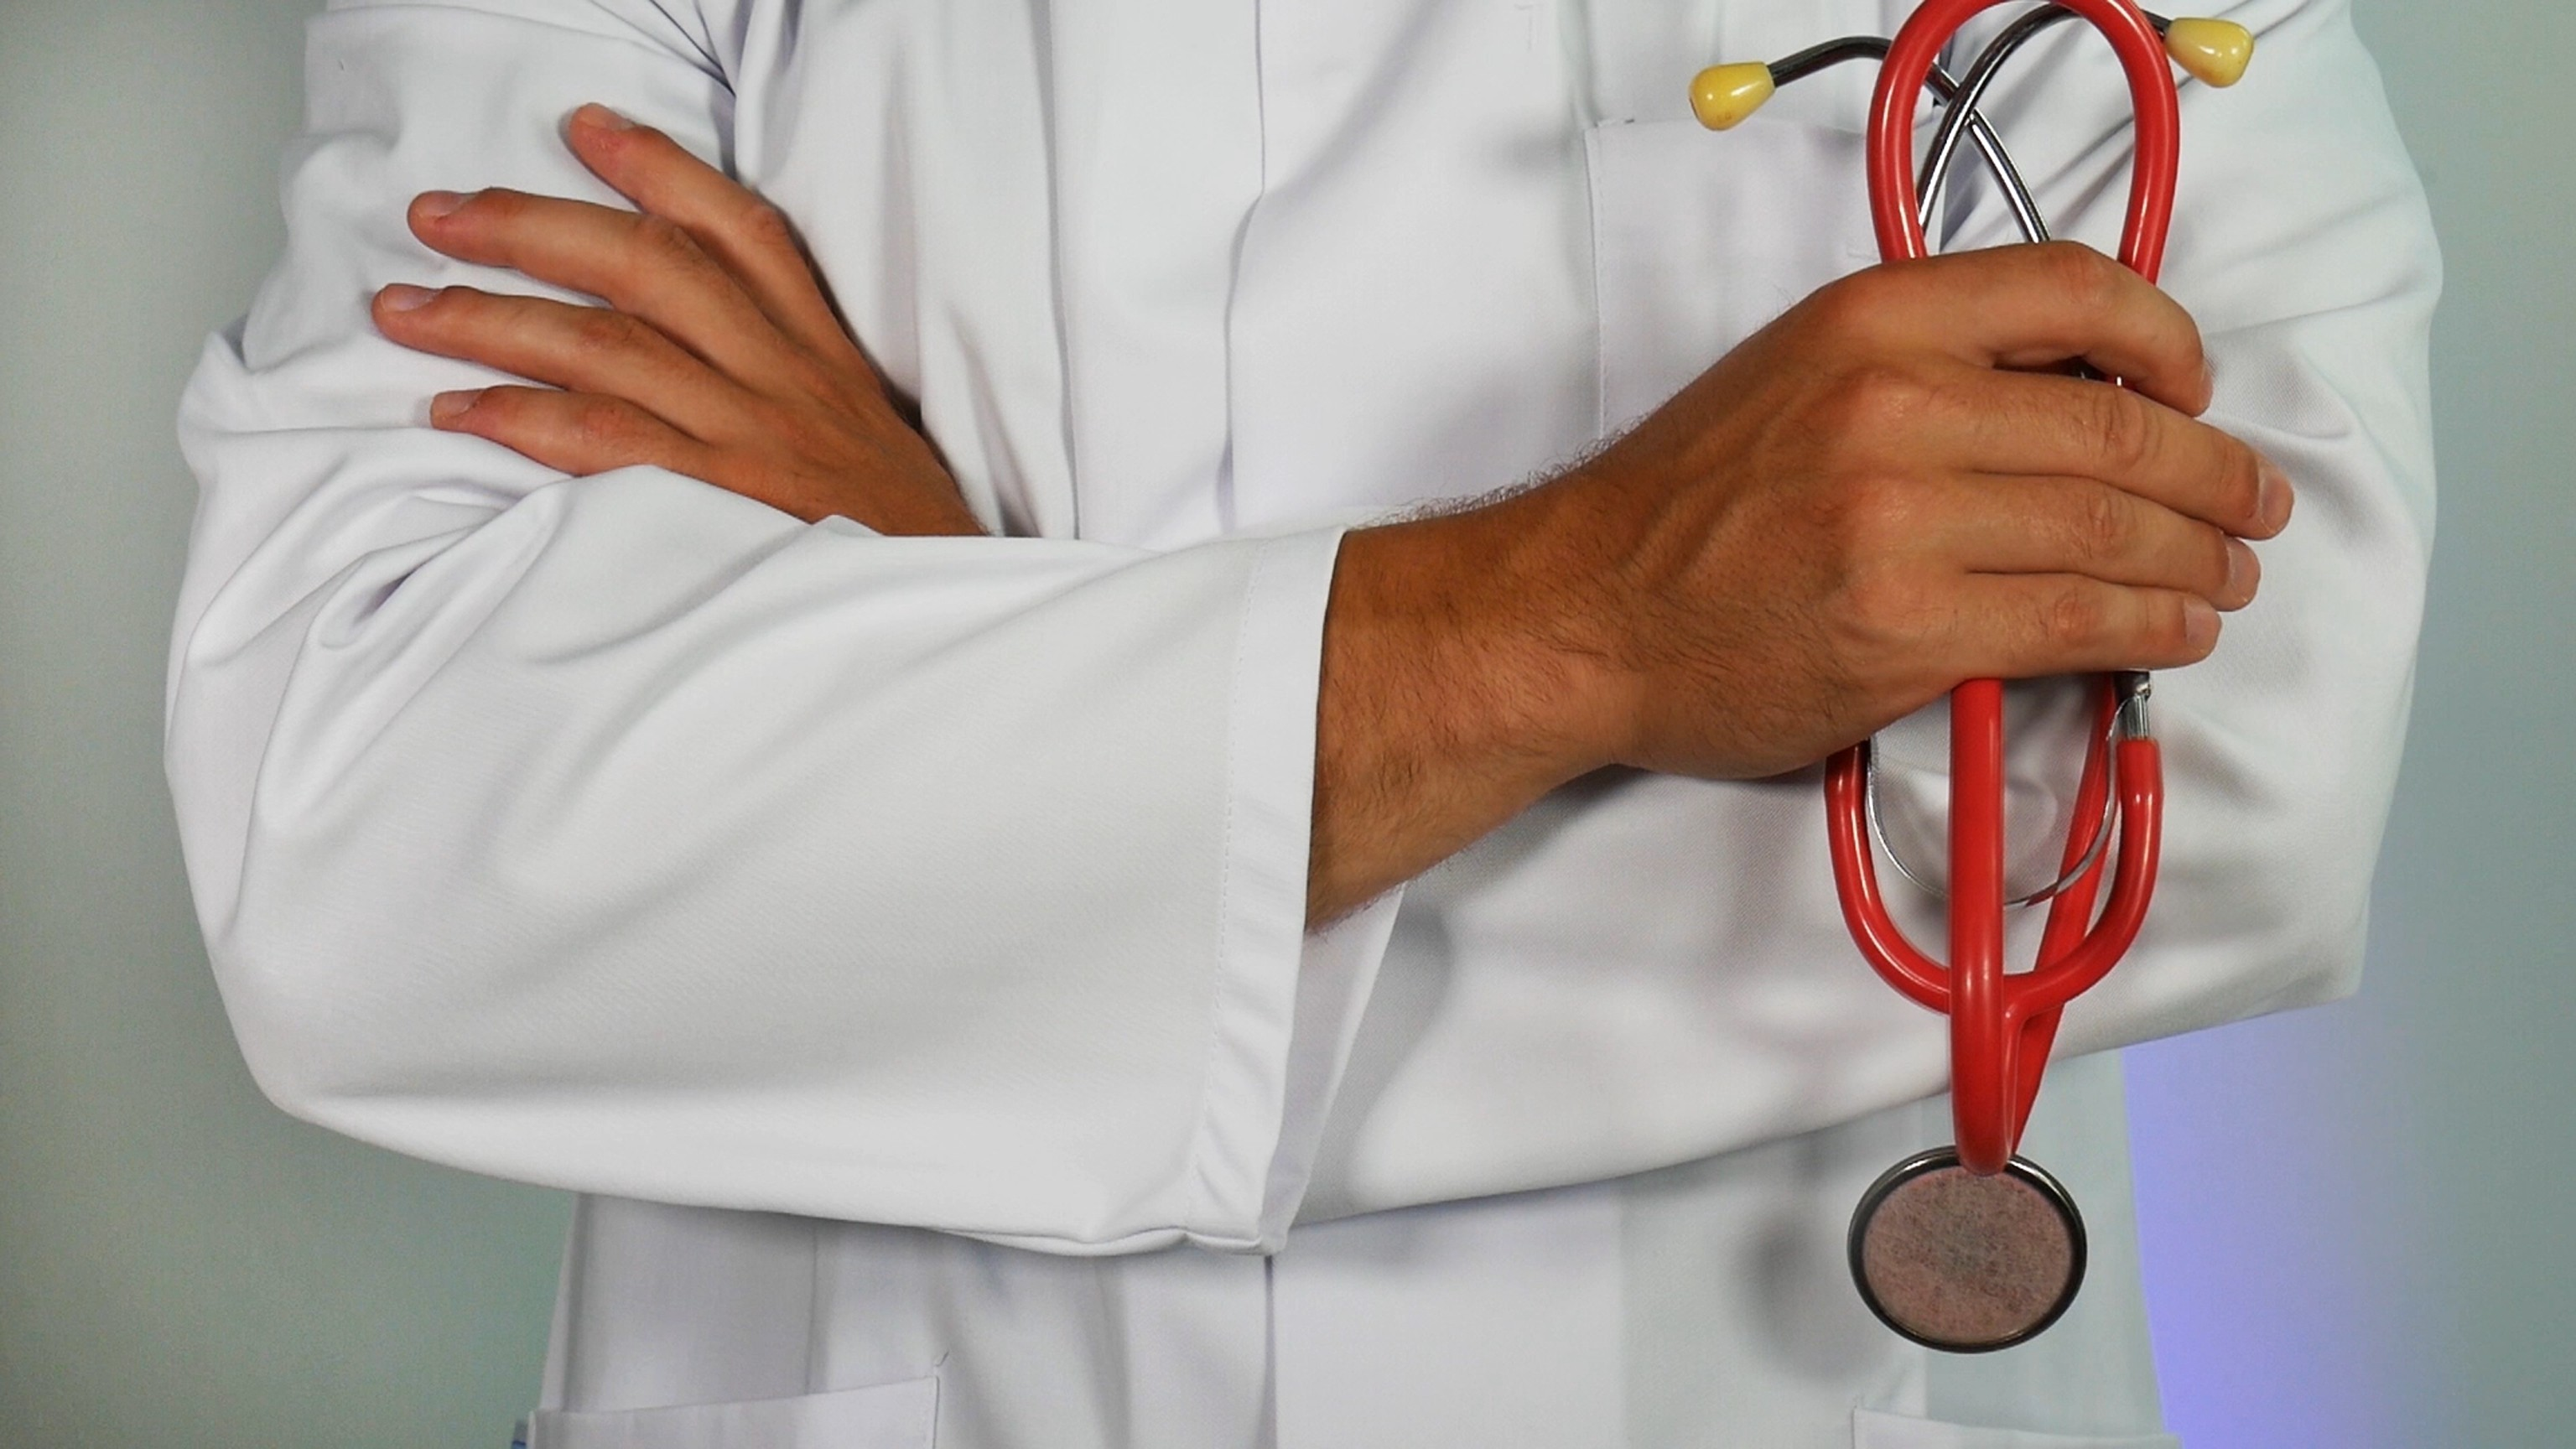 cropped photo showing the chest and arms of a man in a white coat who is holding a stethoscope with his arms crossed.